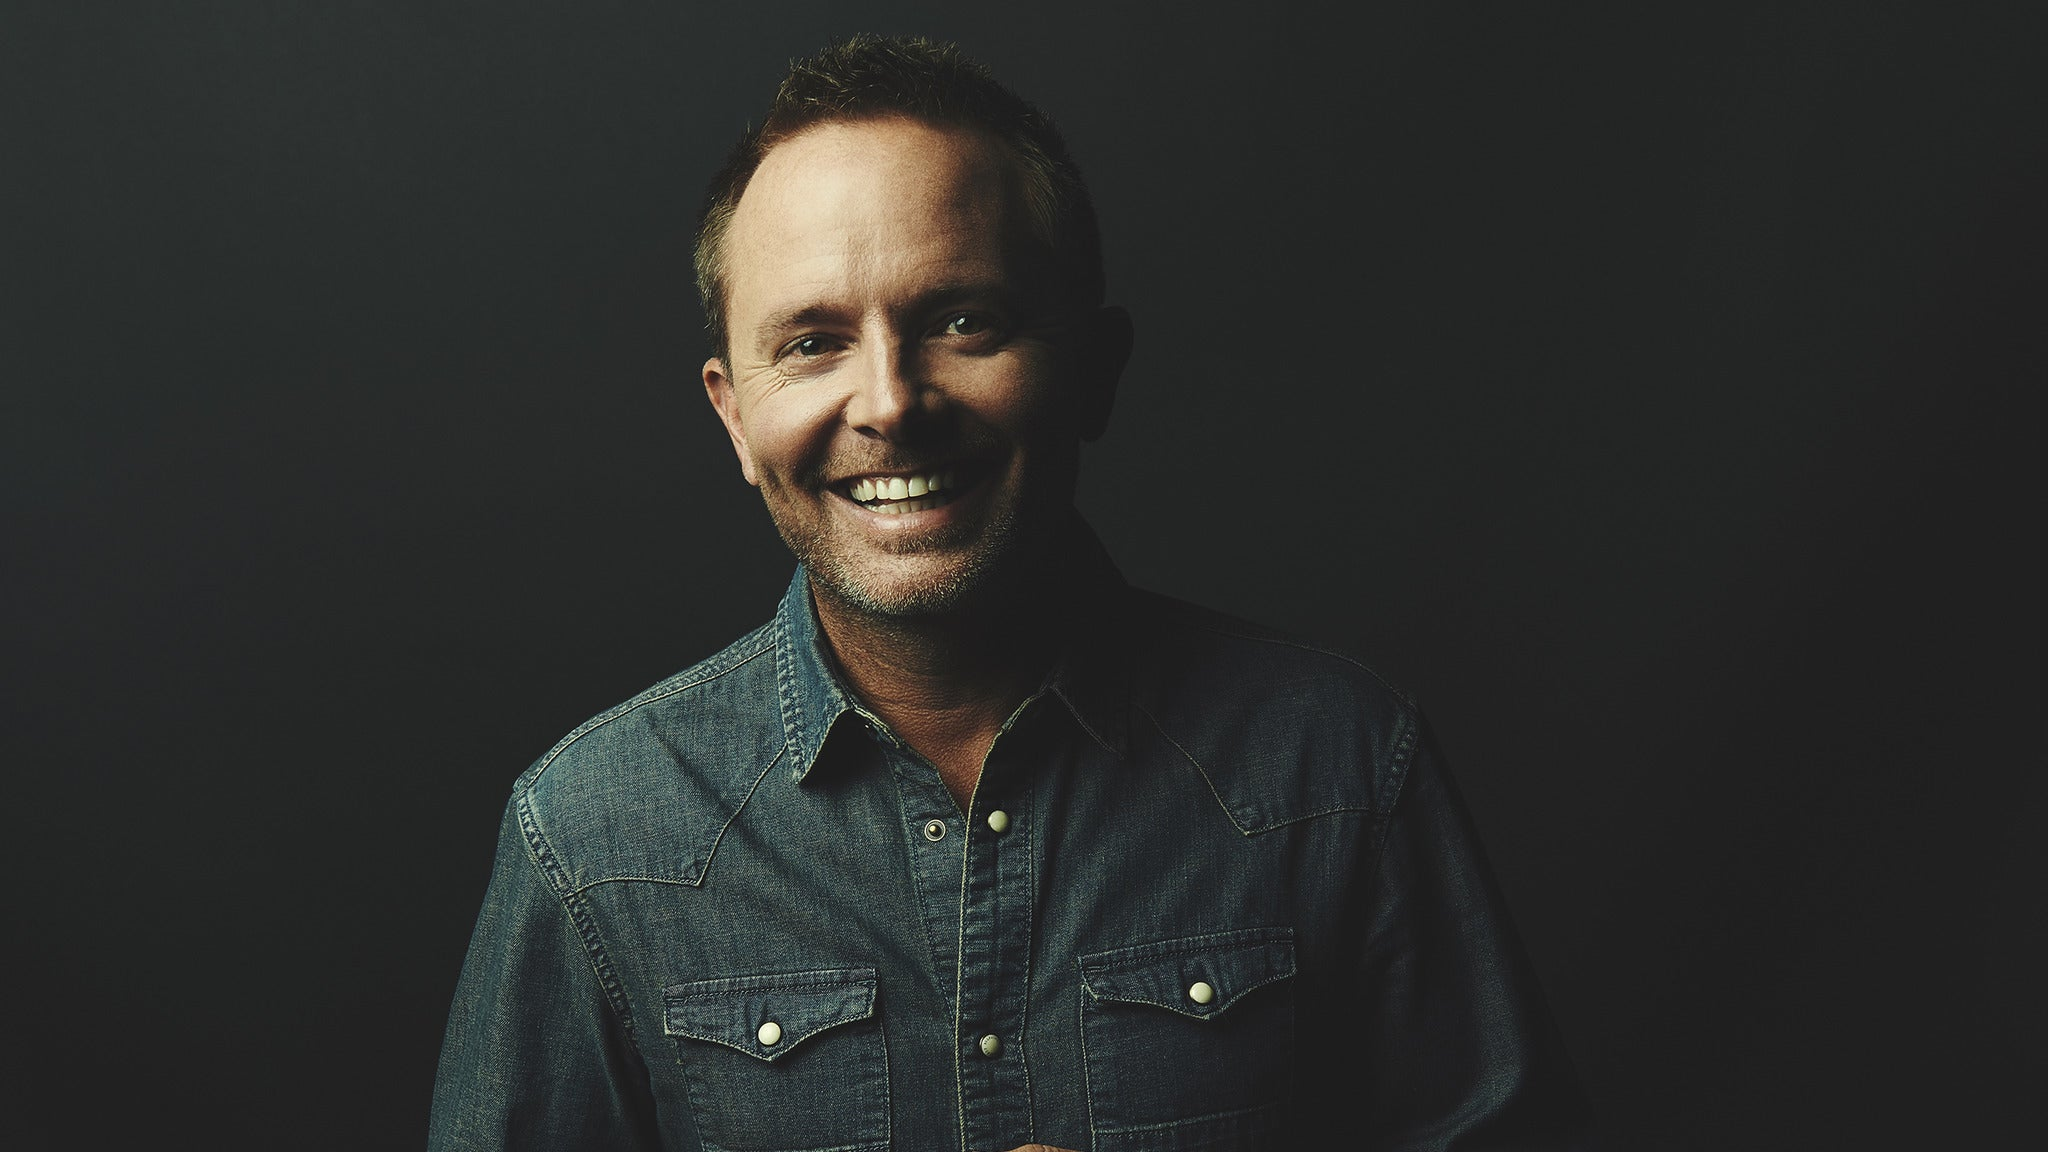 Chris Tomlin at Martin Luther King Jr Arena